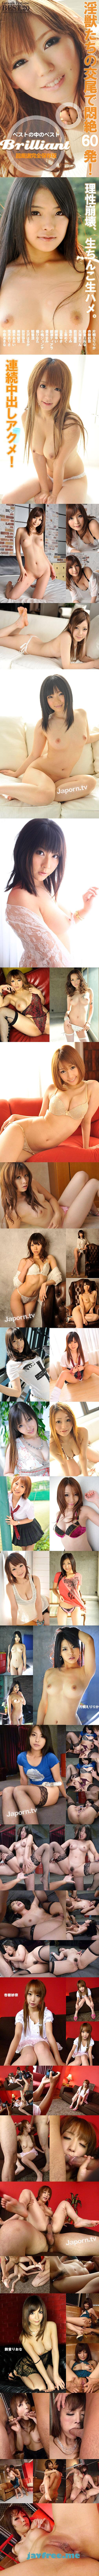 [CDRP-09] キャットウォーク パフューム 09 ~Brilliant Best 20 Special Collection~ - image CDRP-09a on https://javfree.me